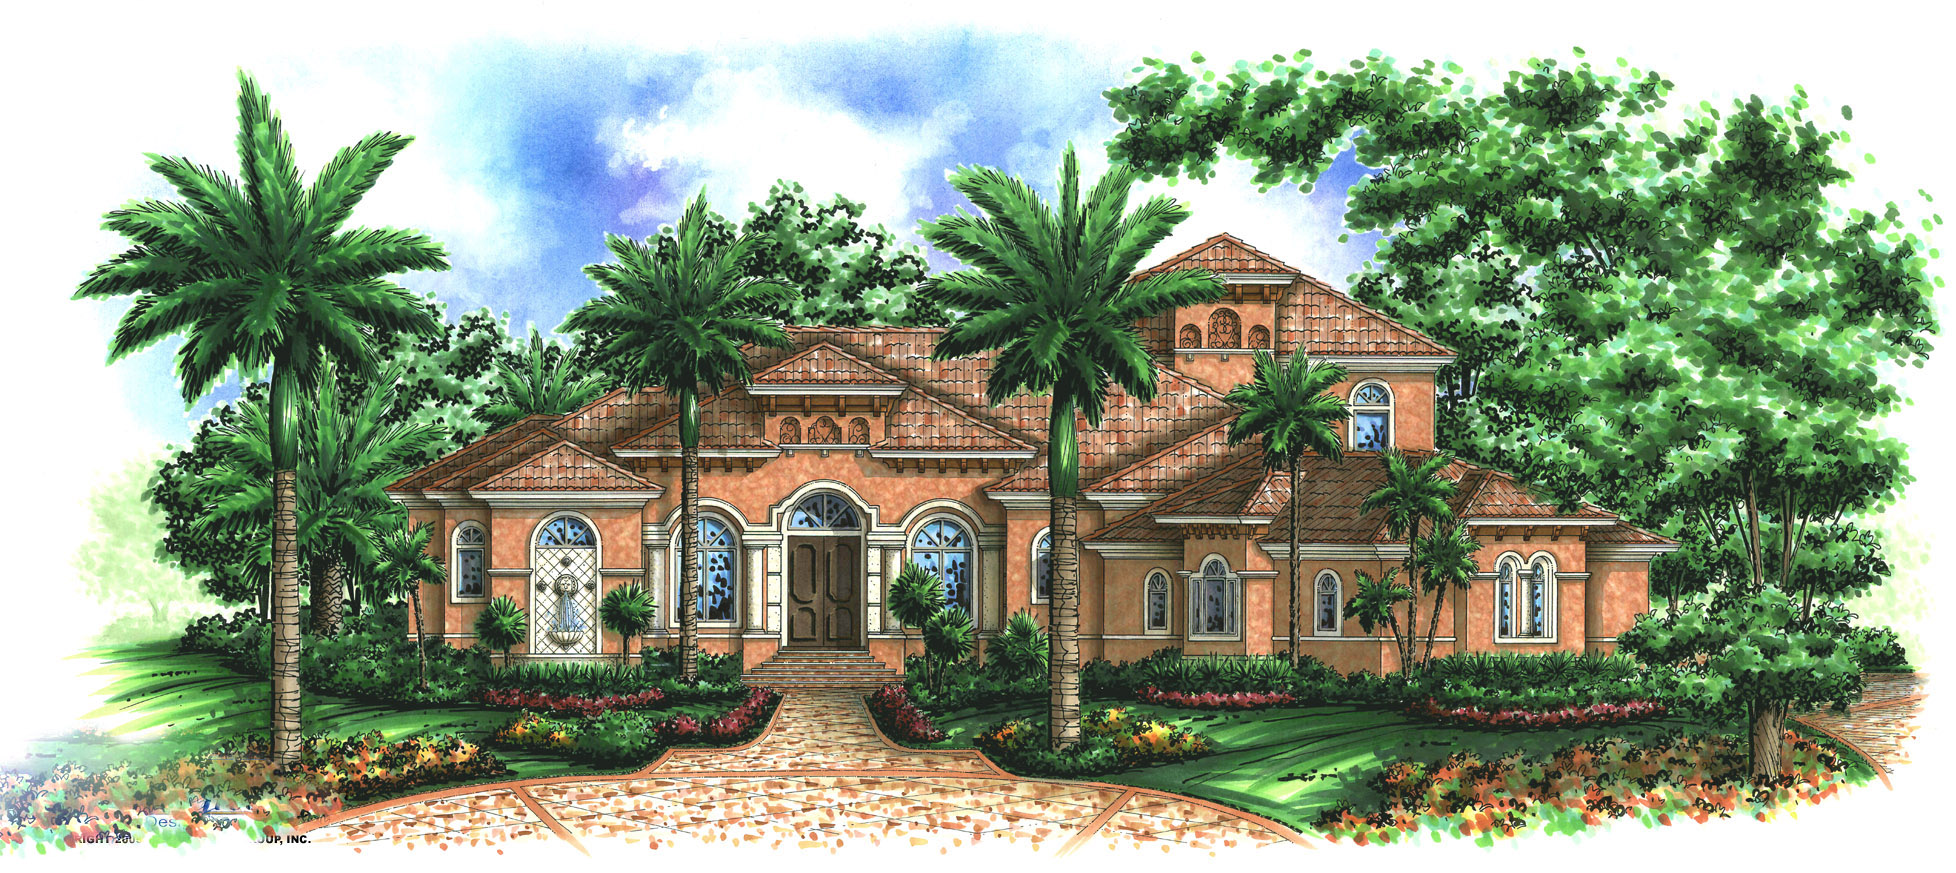 beautifully designed tuscan house plan 66185we 1st floor master suite bonus room cad available den office library study florida luxury mbr sitting